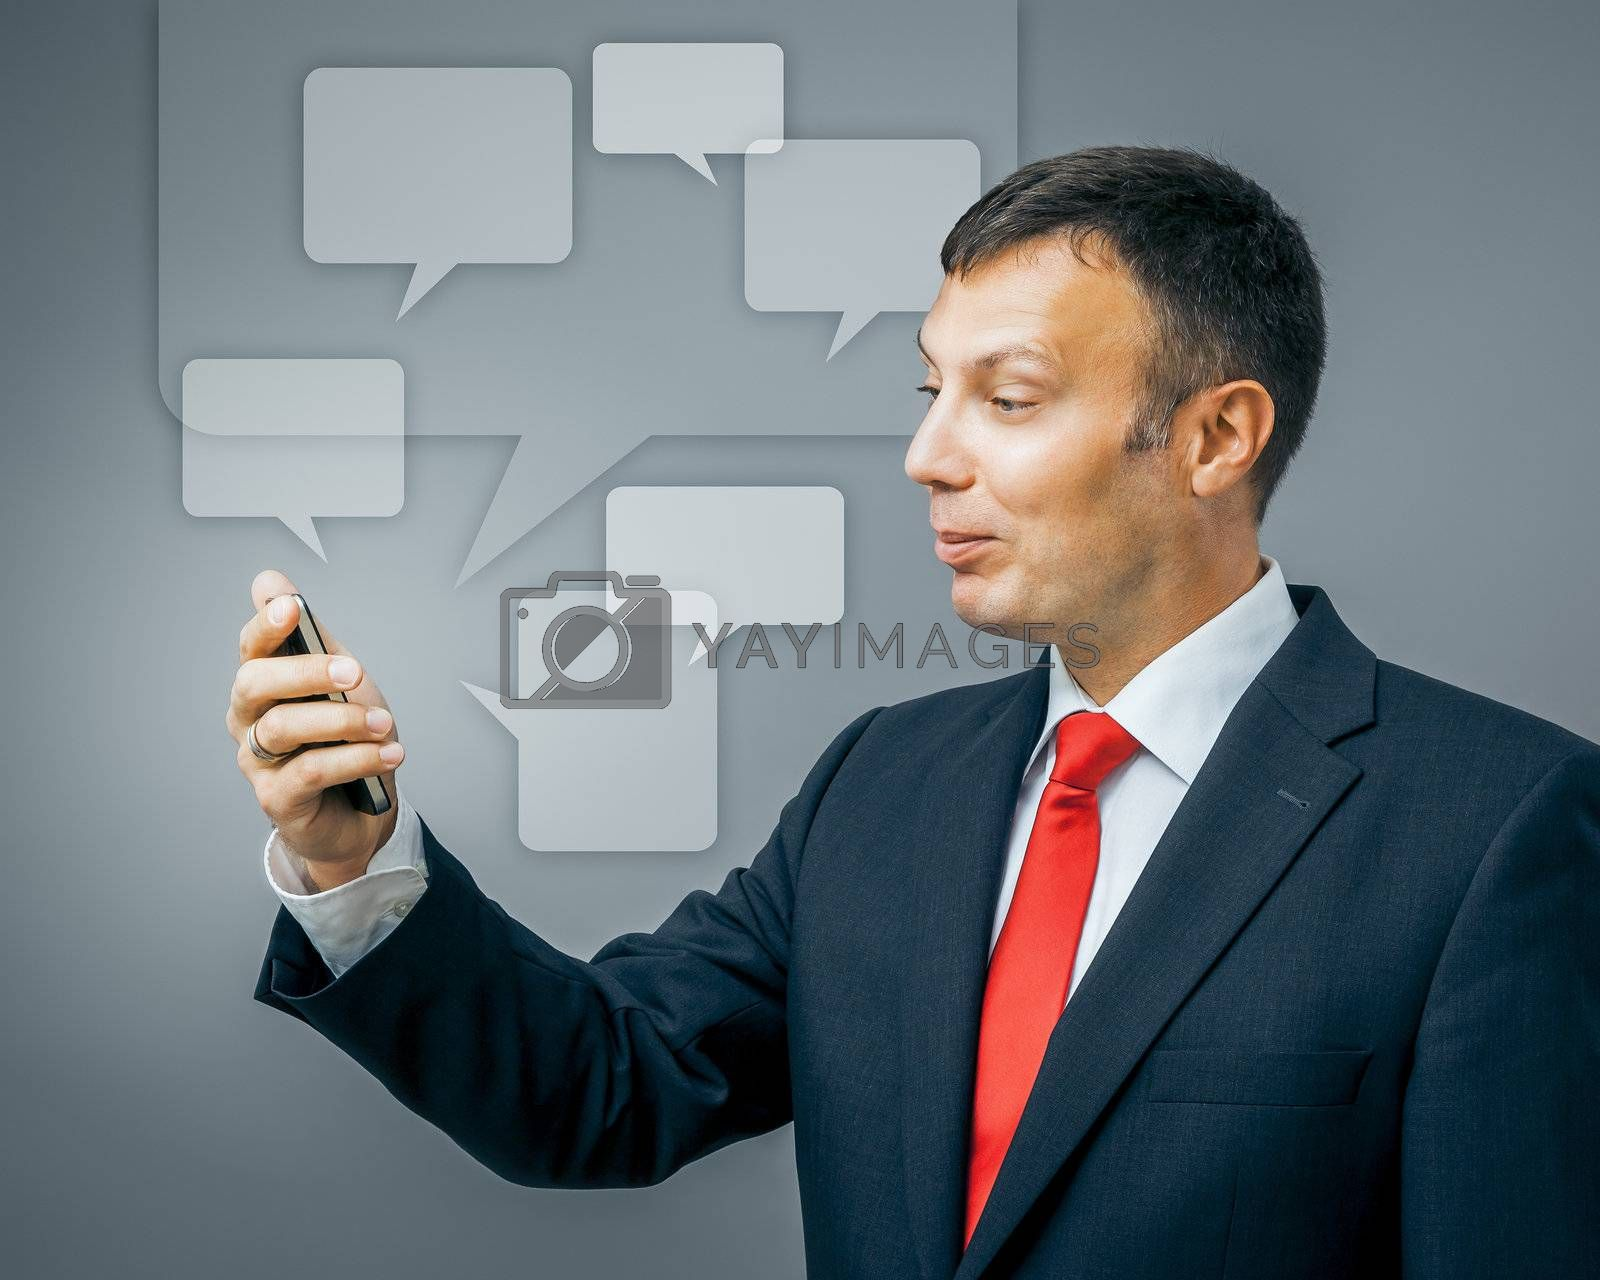 An image of a business man communication